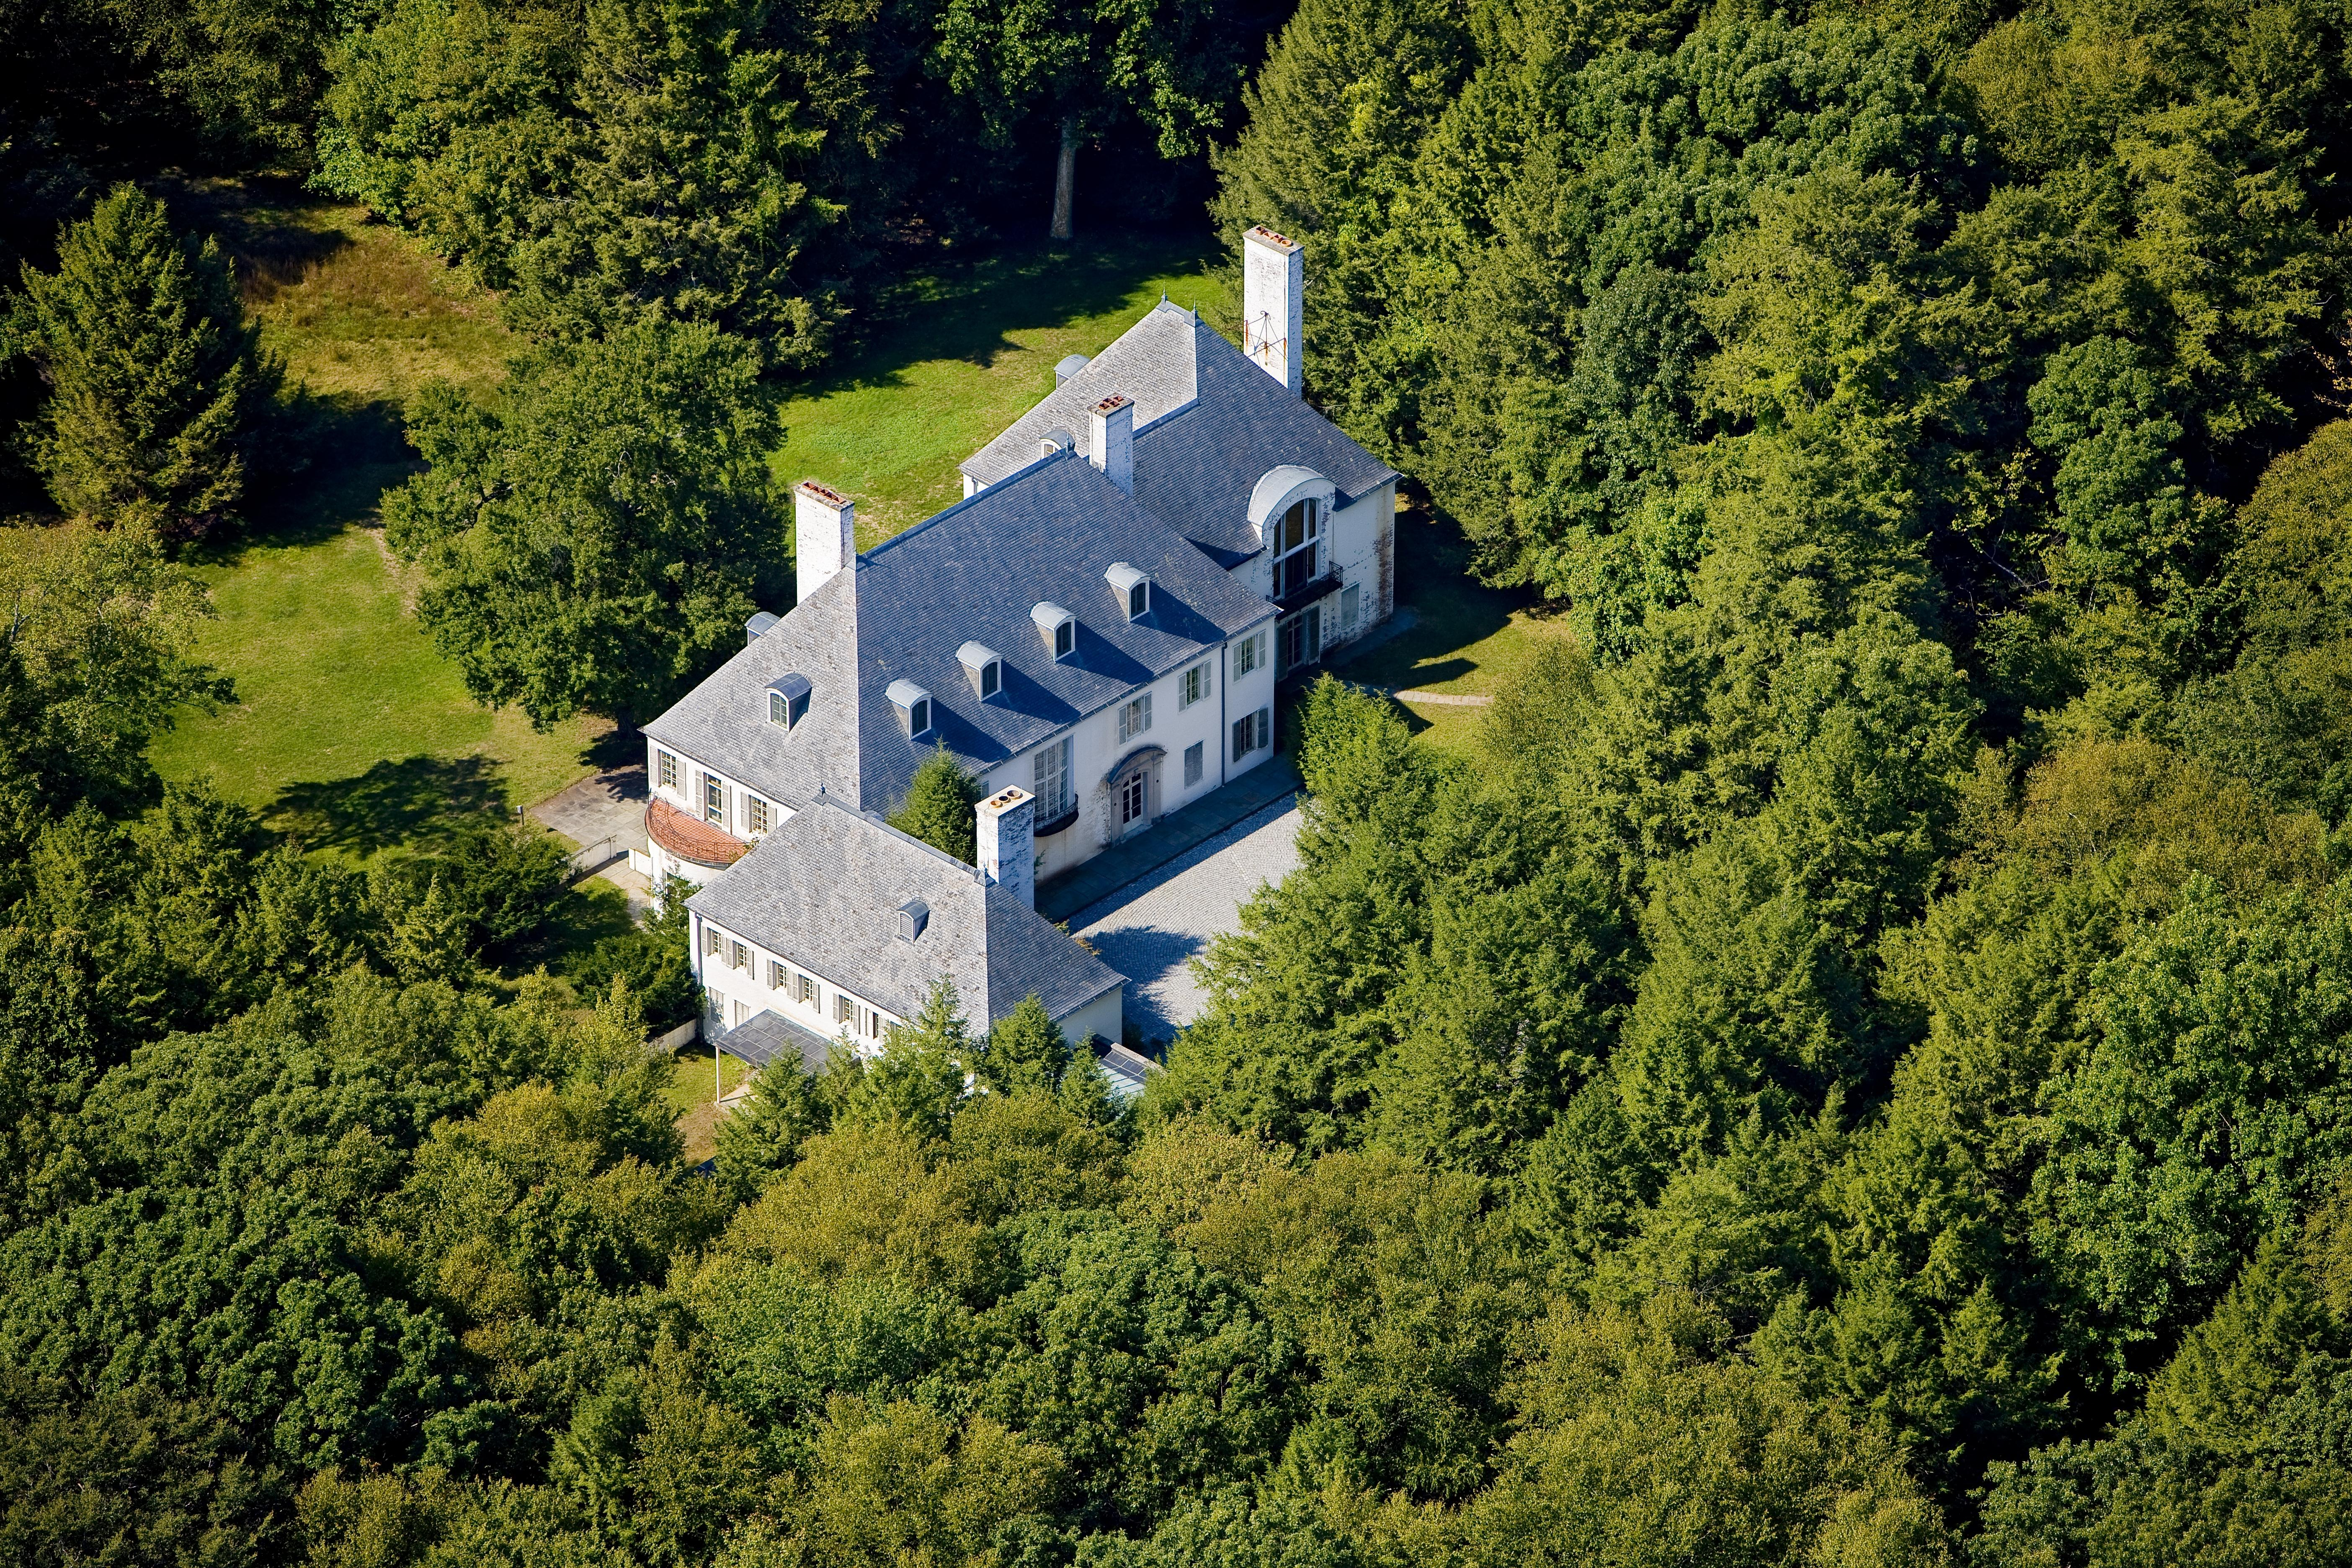 Aerial view of Le Beau Château, Huguette Clark's country retreat in New Canaan, Connecticut.